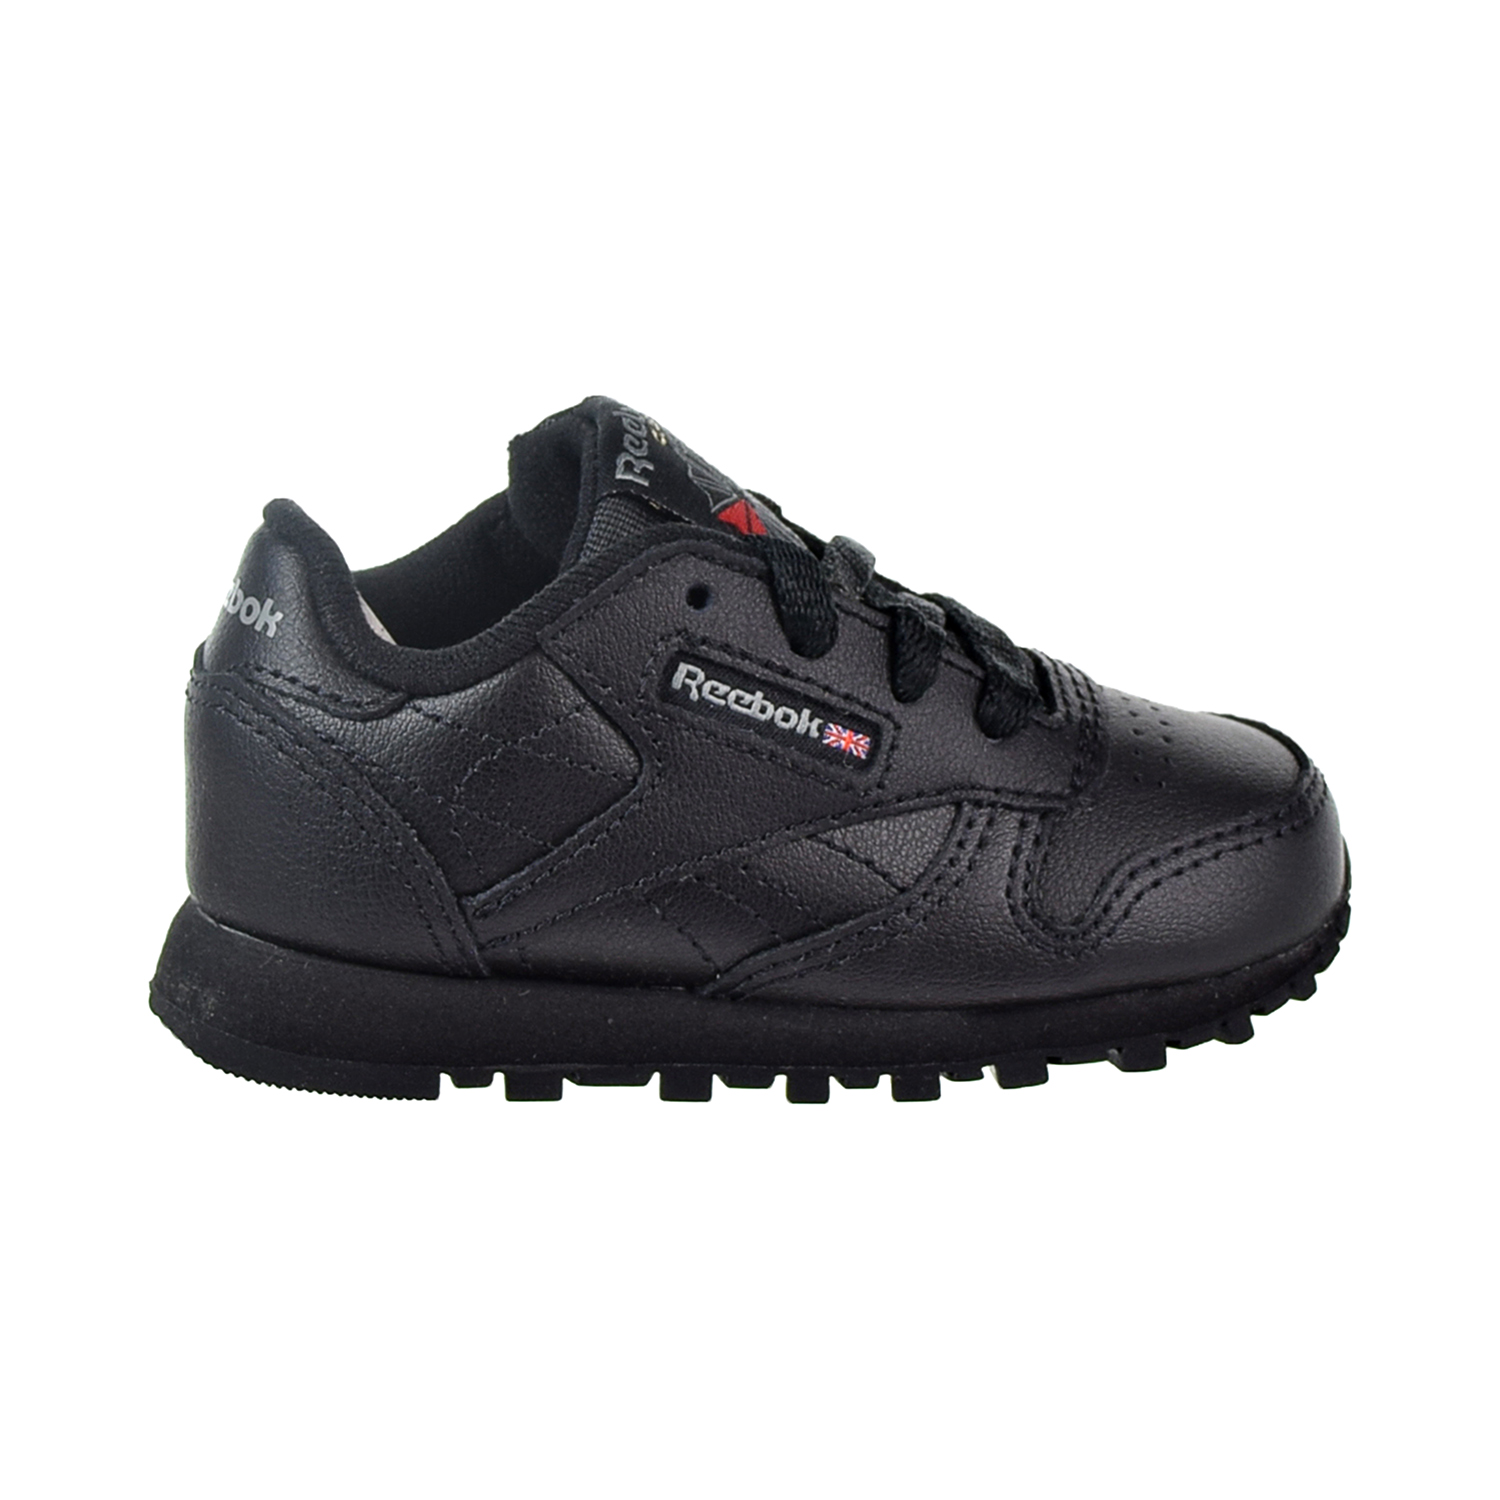 Reebok Classic Leather Toddler/'s Shoes Black 92757